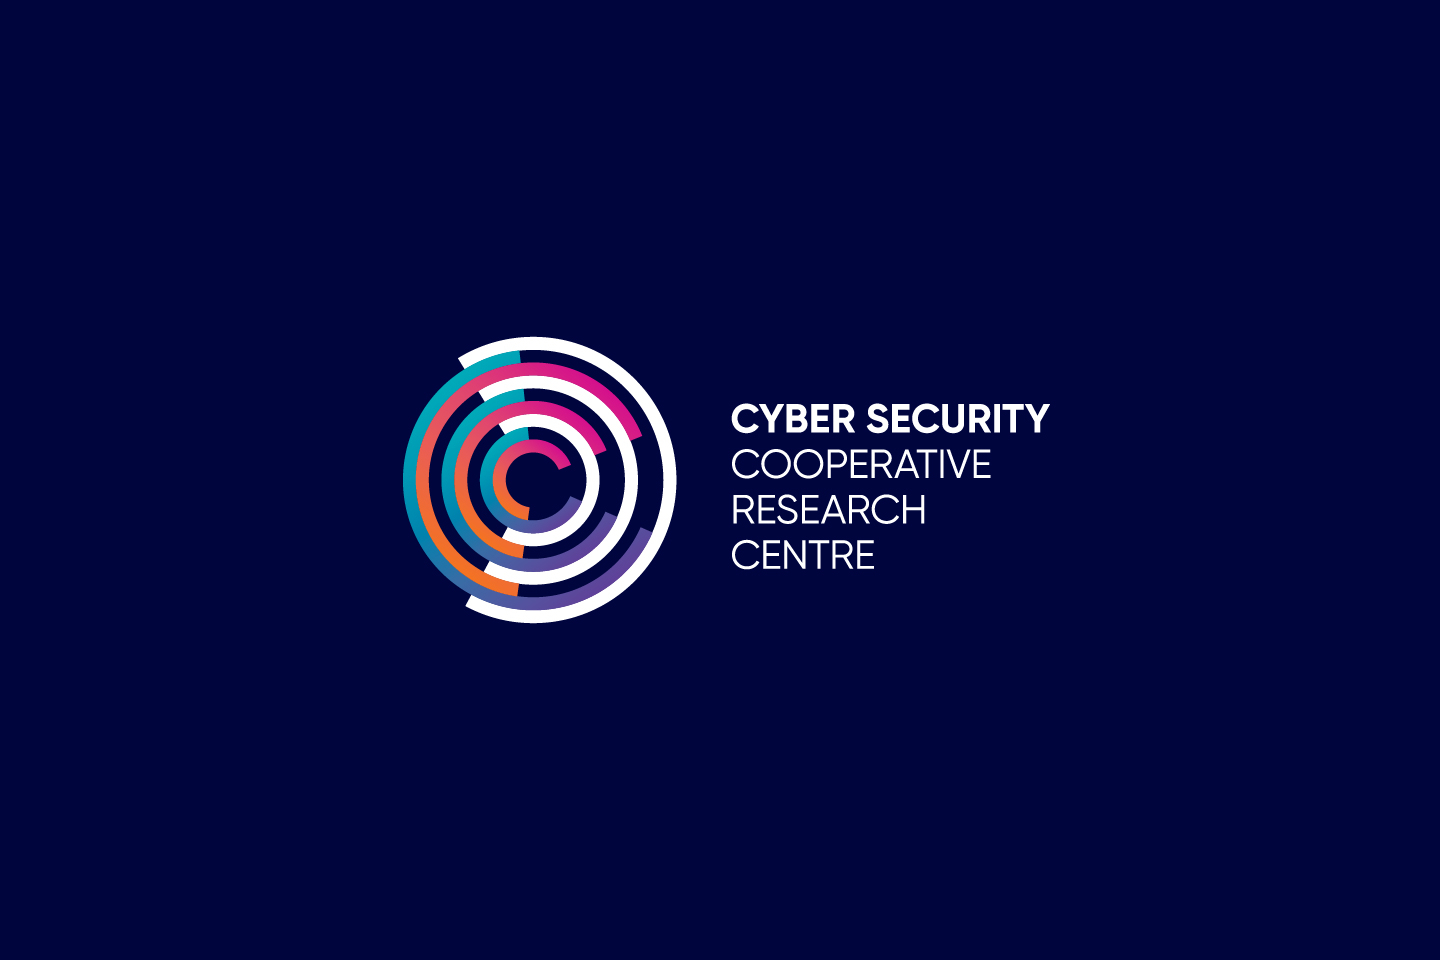 Cyber Security Cooperative Research Centre